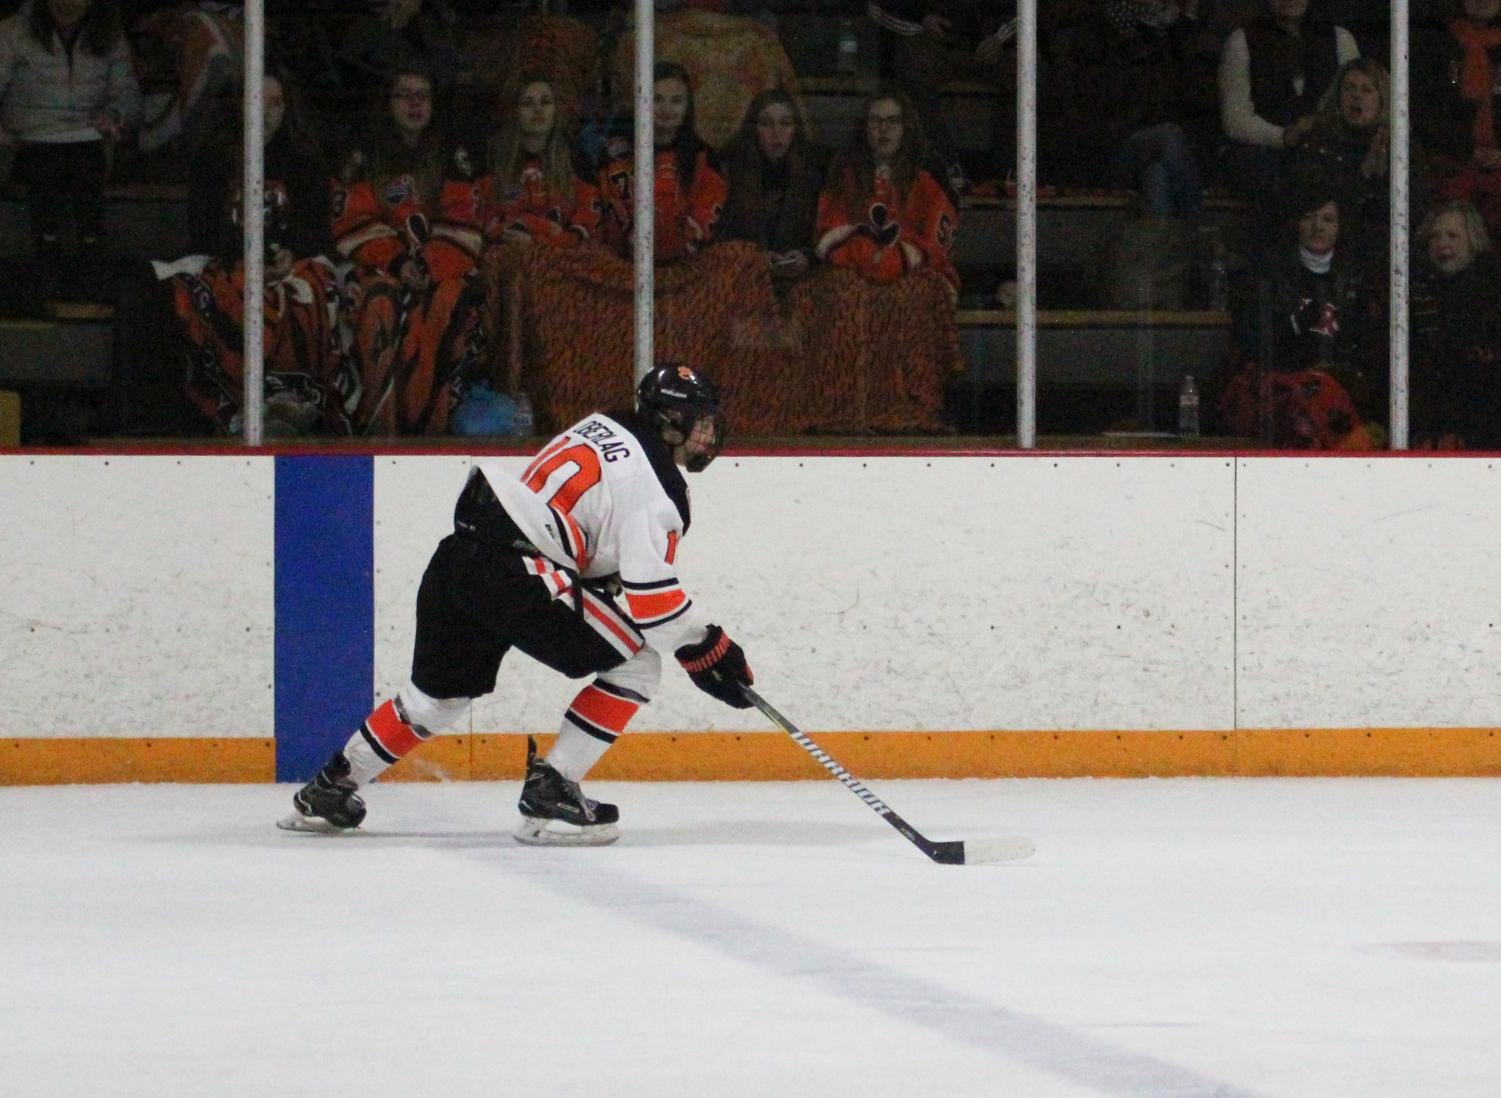 Senior captain Mitchell Oberlag skates across the rink.